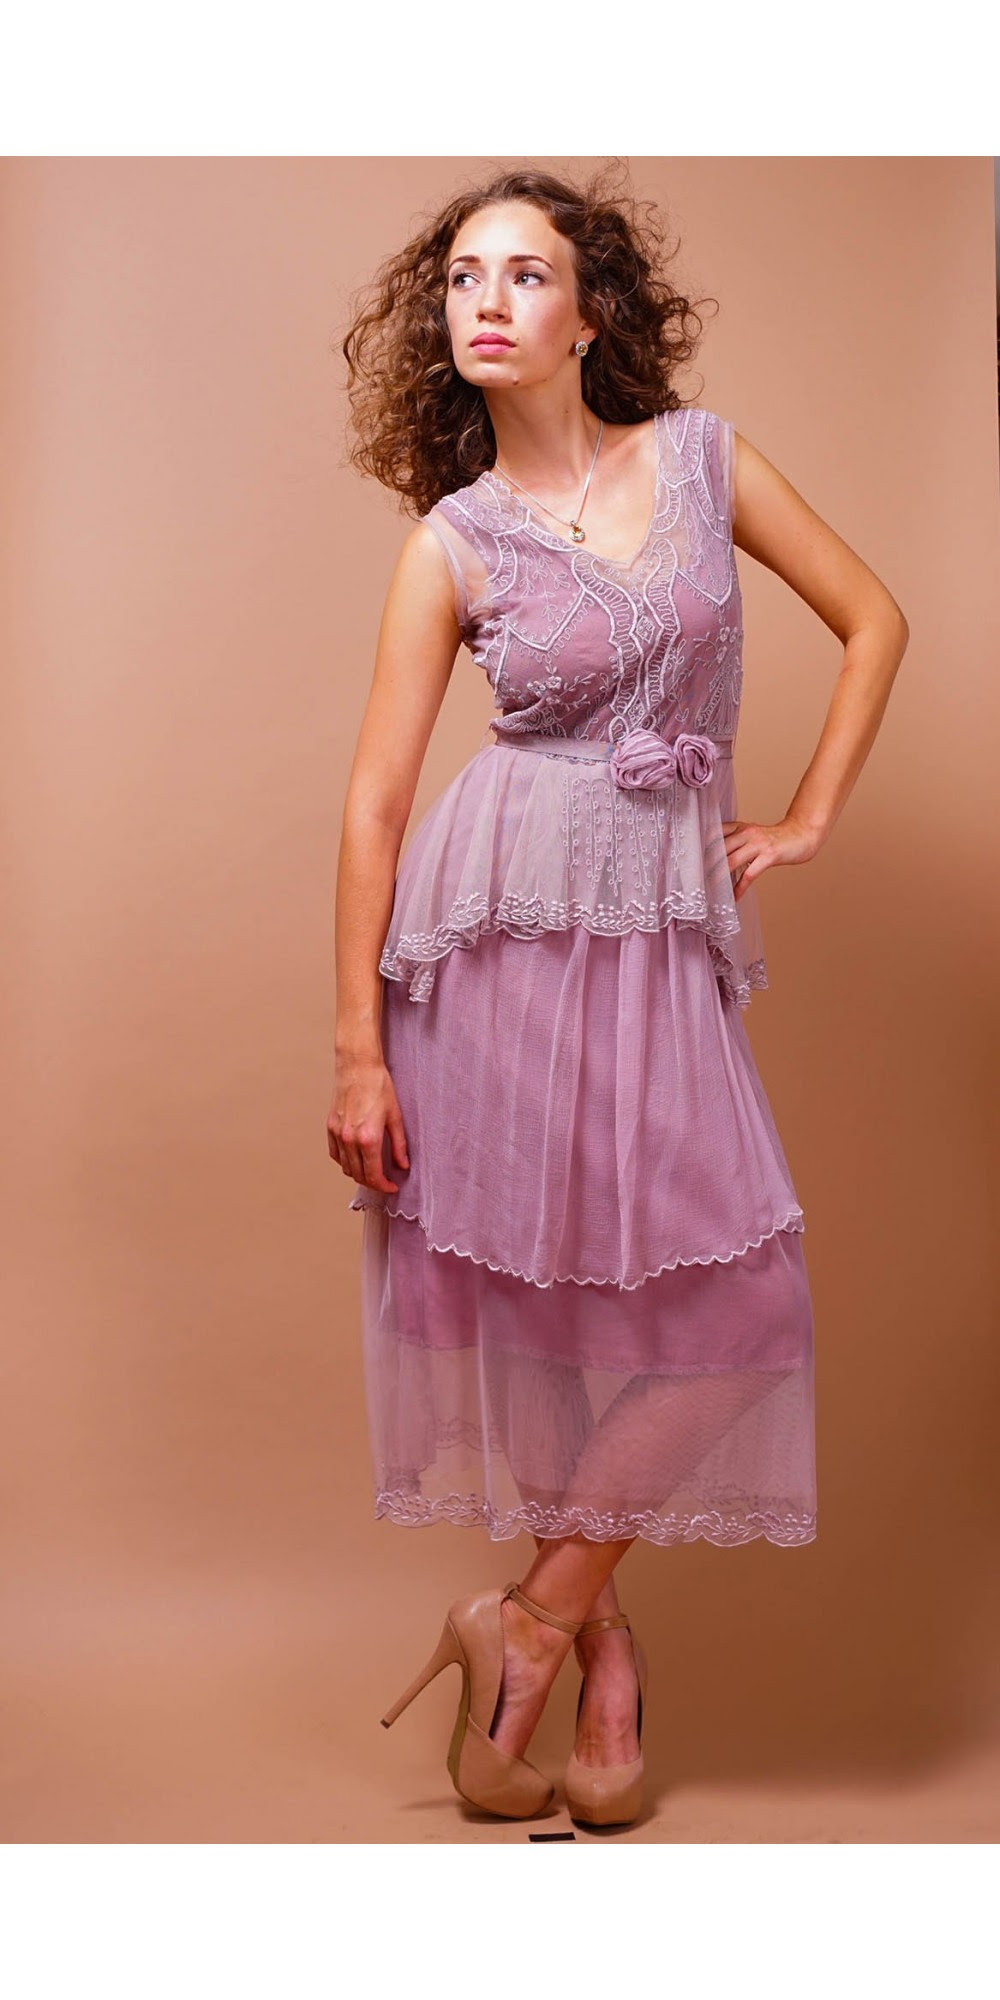 vintage inspired tiered tea party dress in lavenderrose